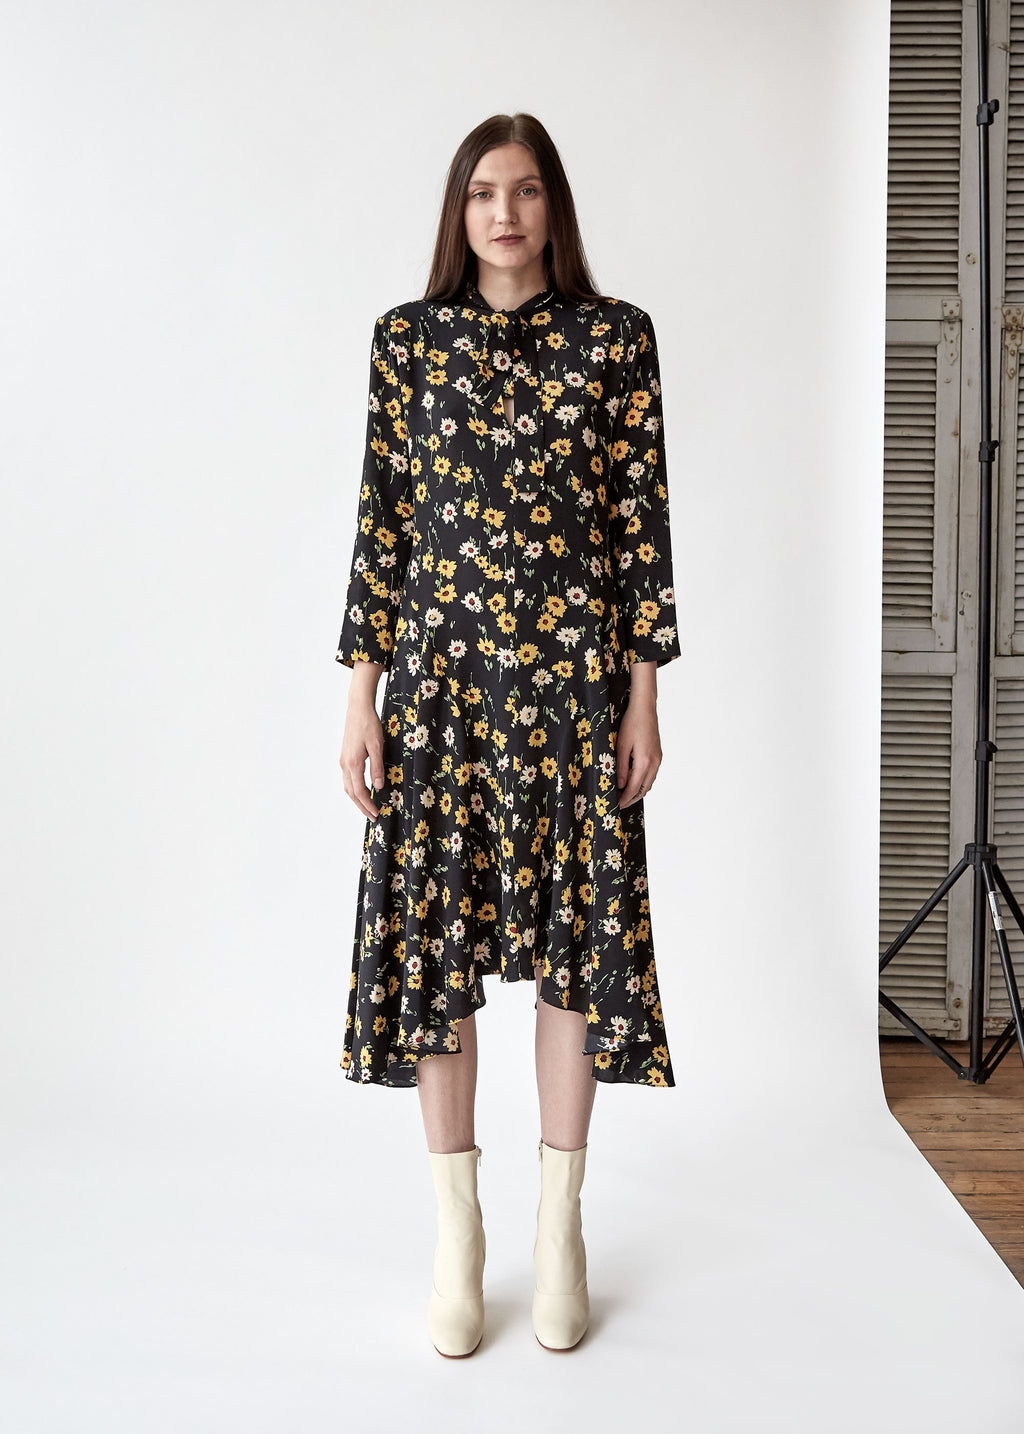 Nessa Tie Dress in Black/Yellow Floral